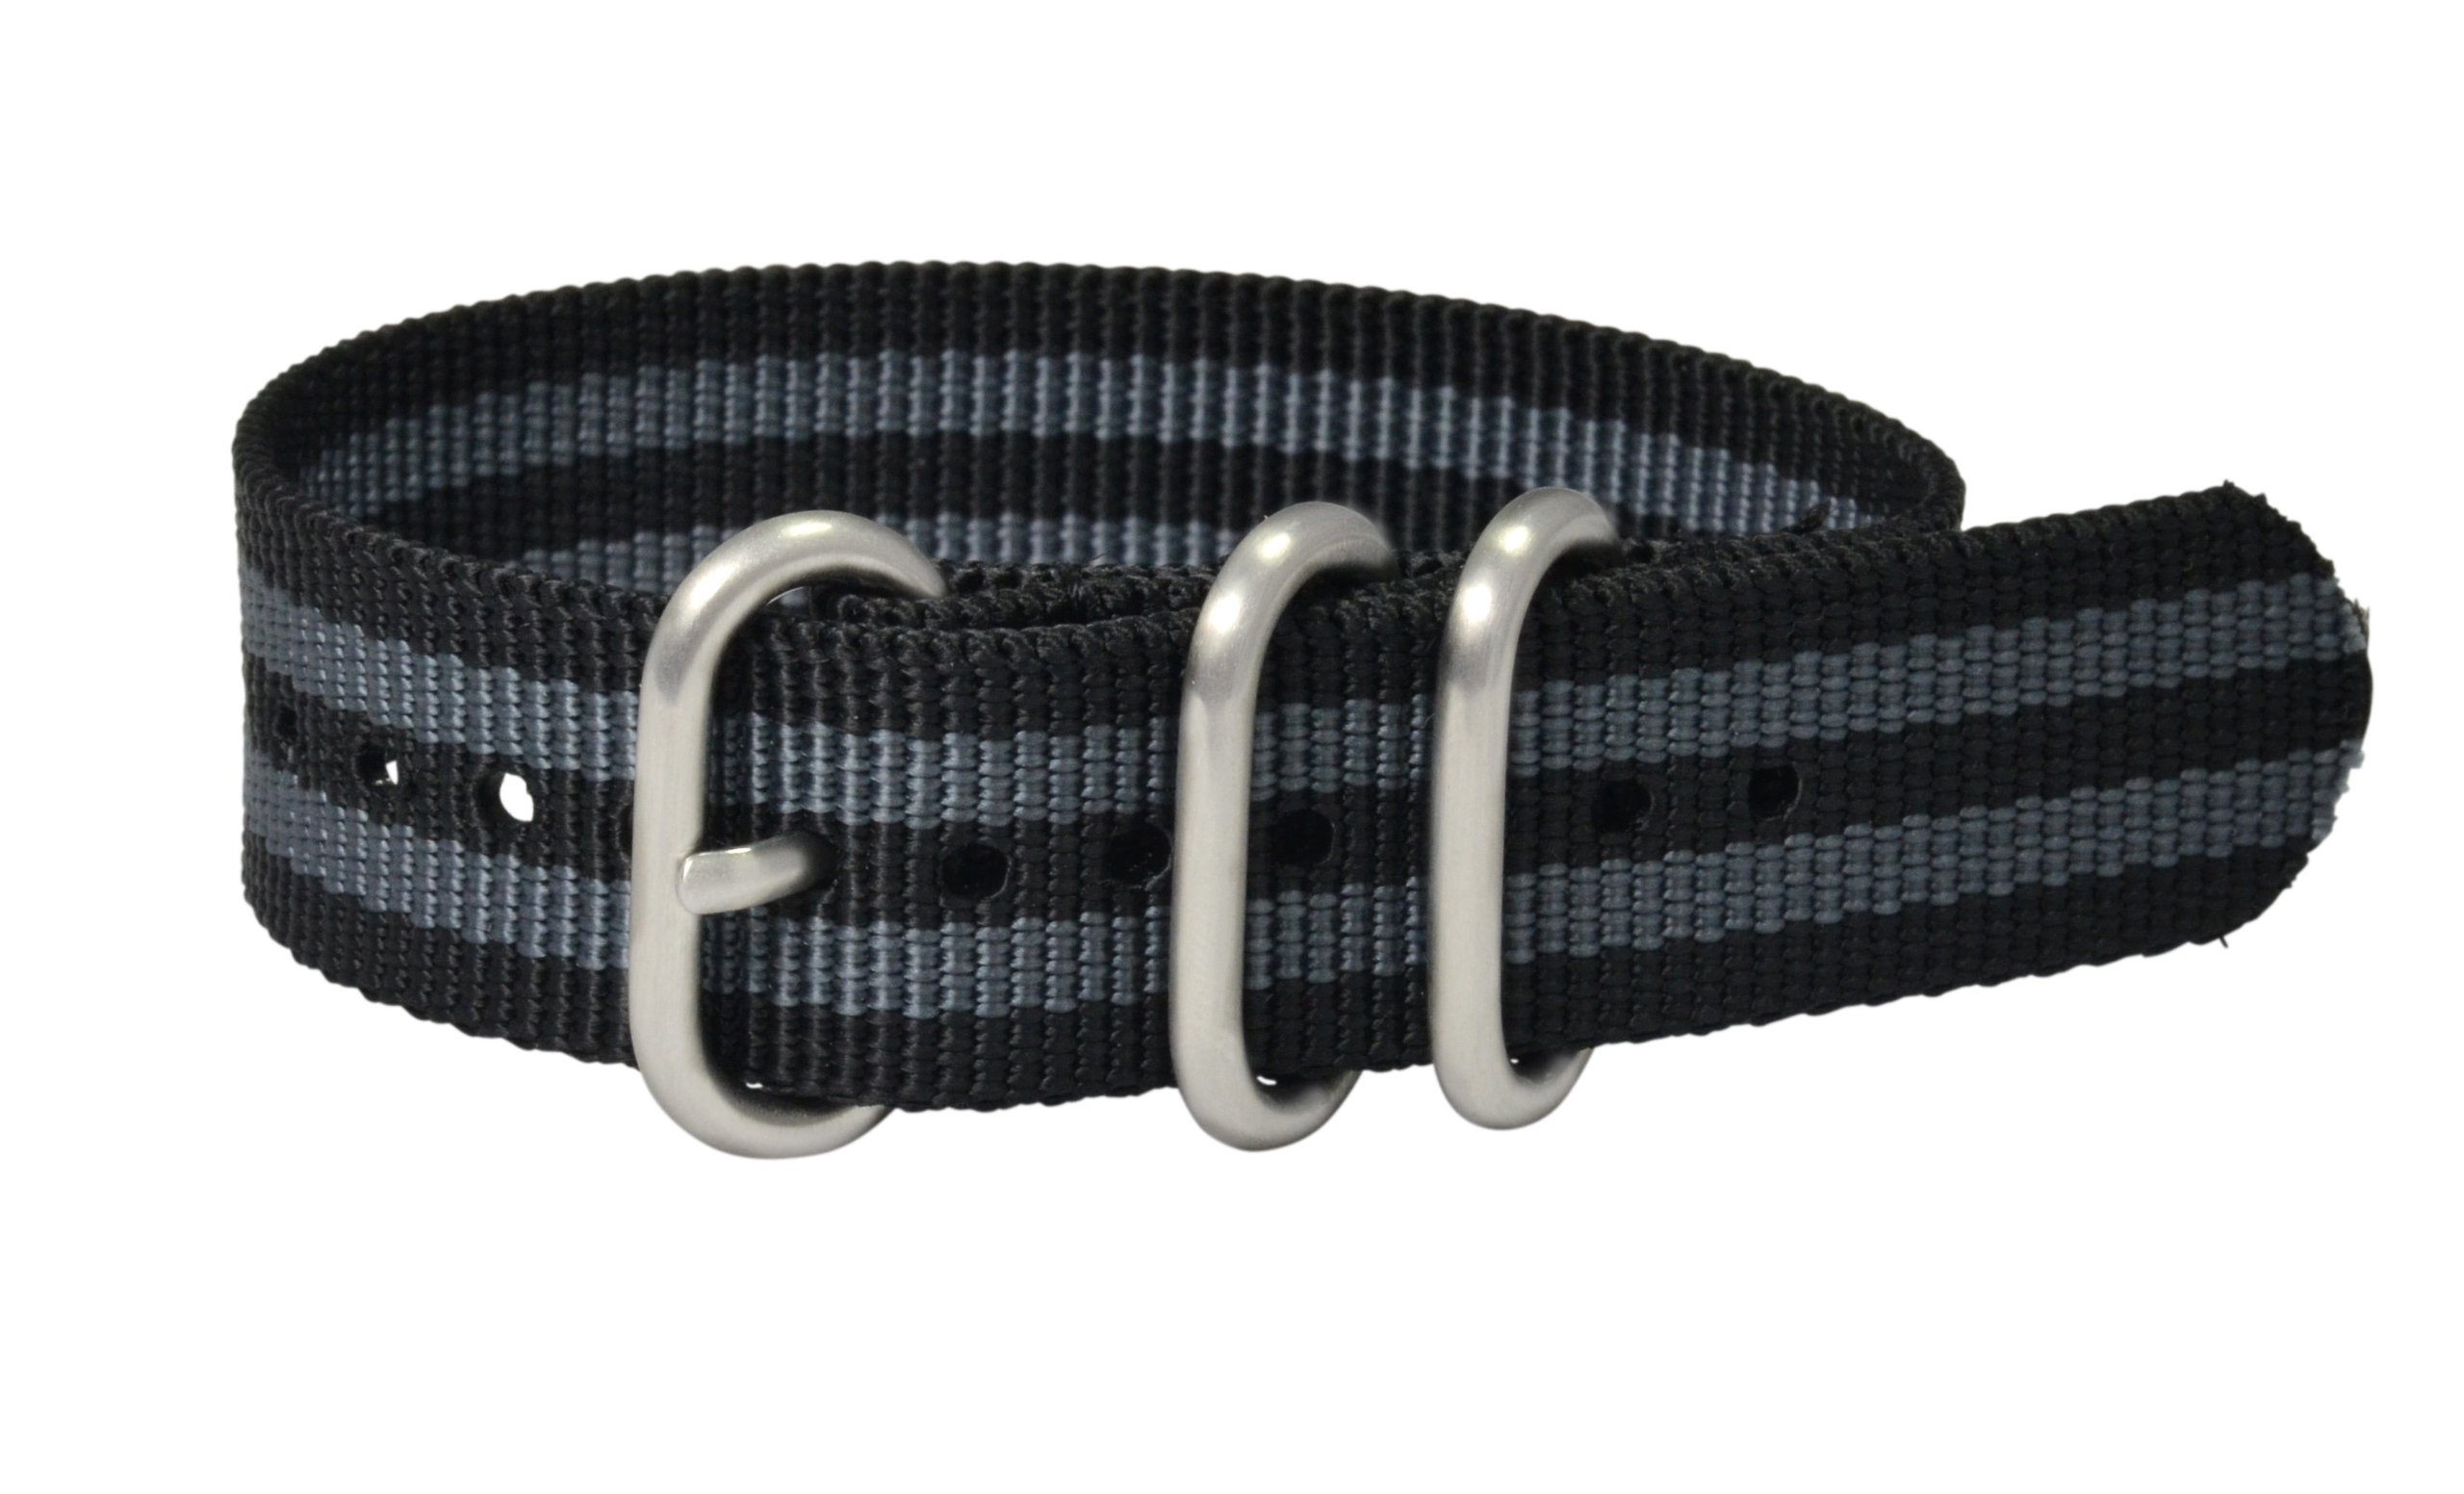 Clockwork Synergy - 3 Ring Heavy NATO Brushed Steel Watch Strap Bands (18mm, Black / Grey)